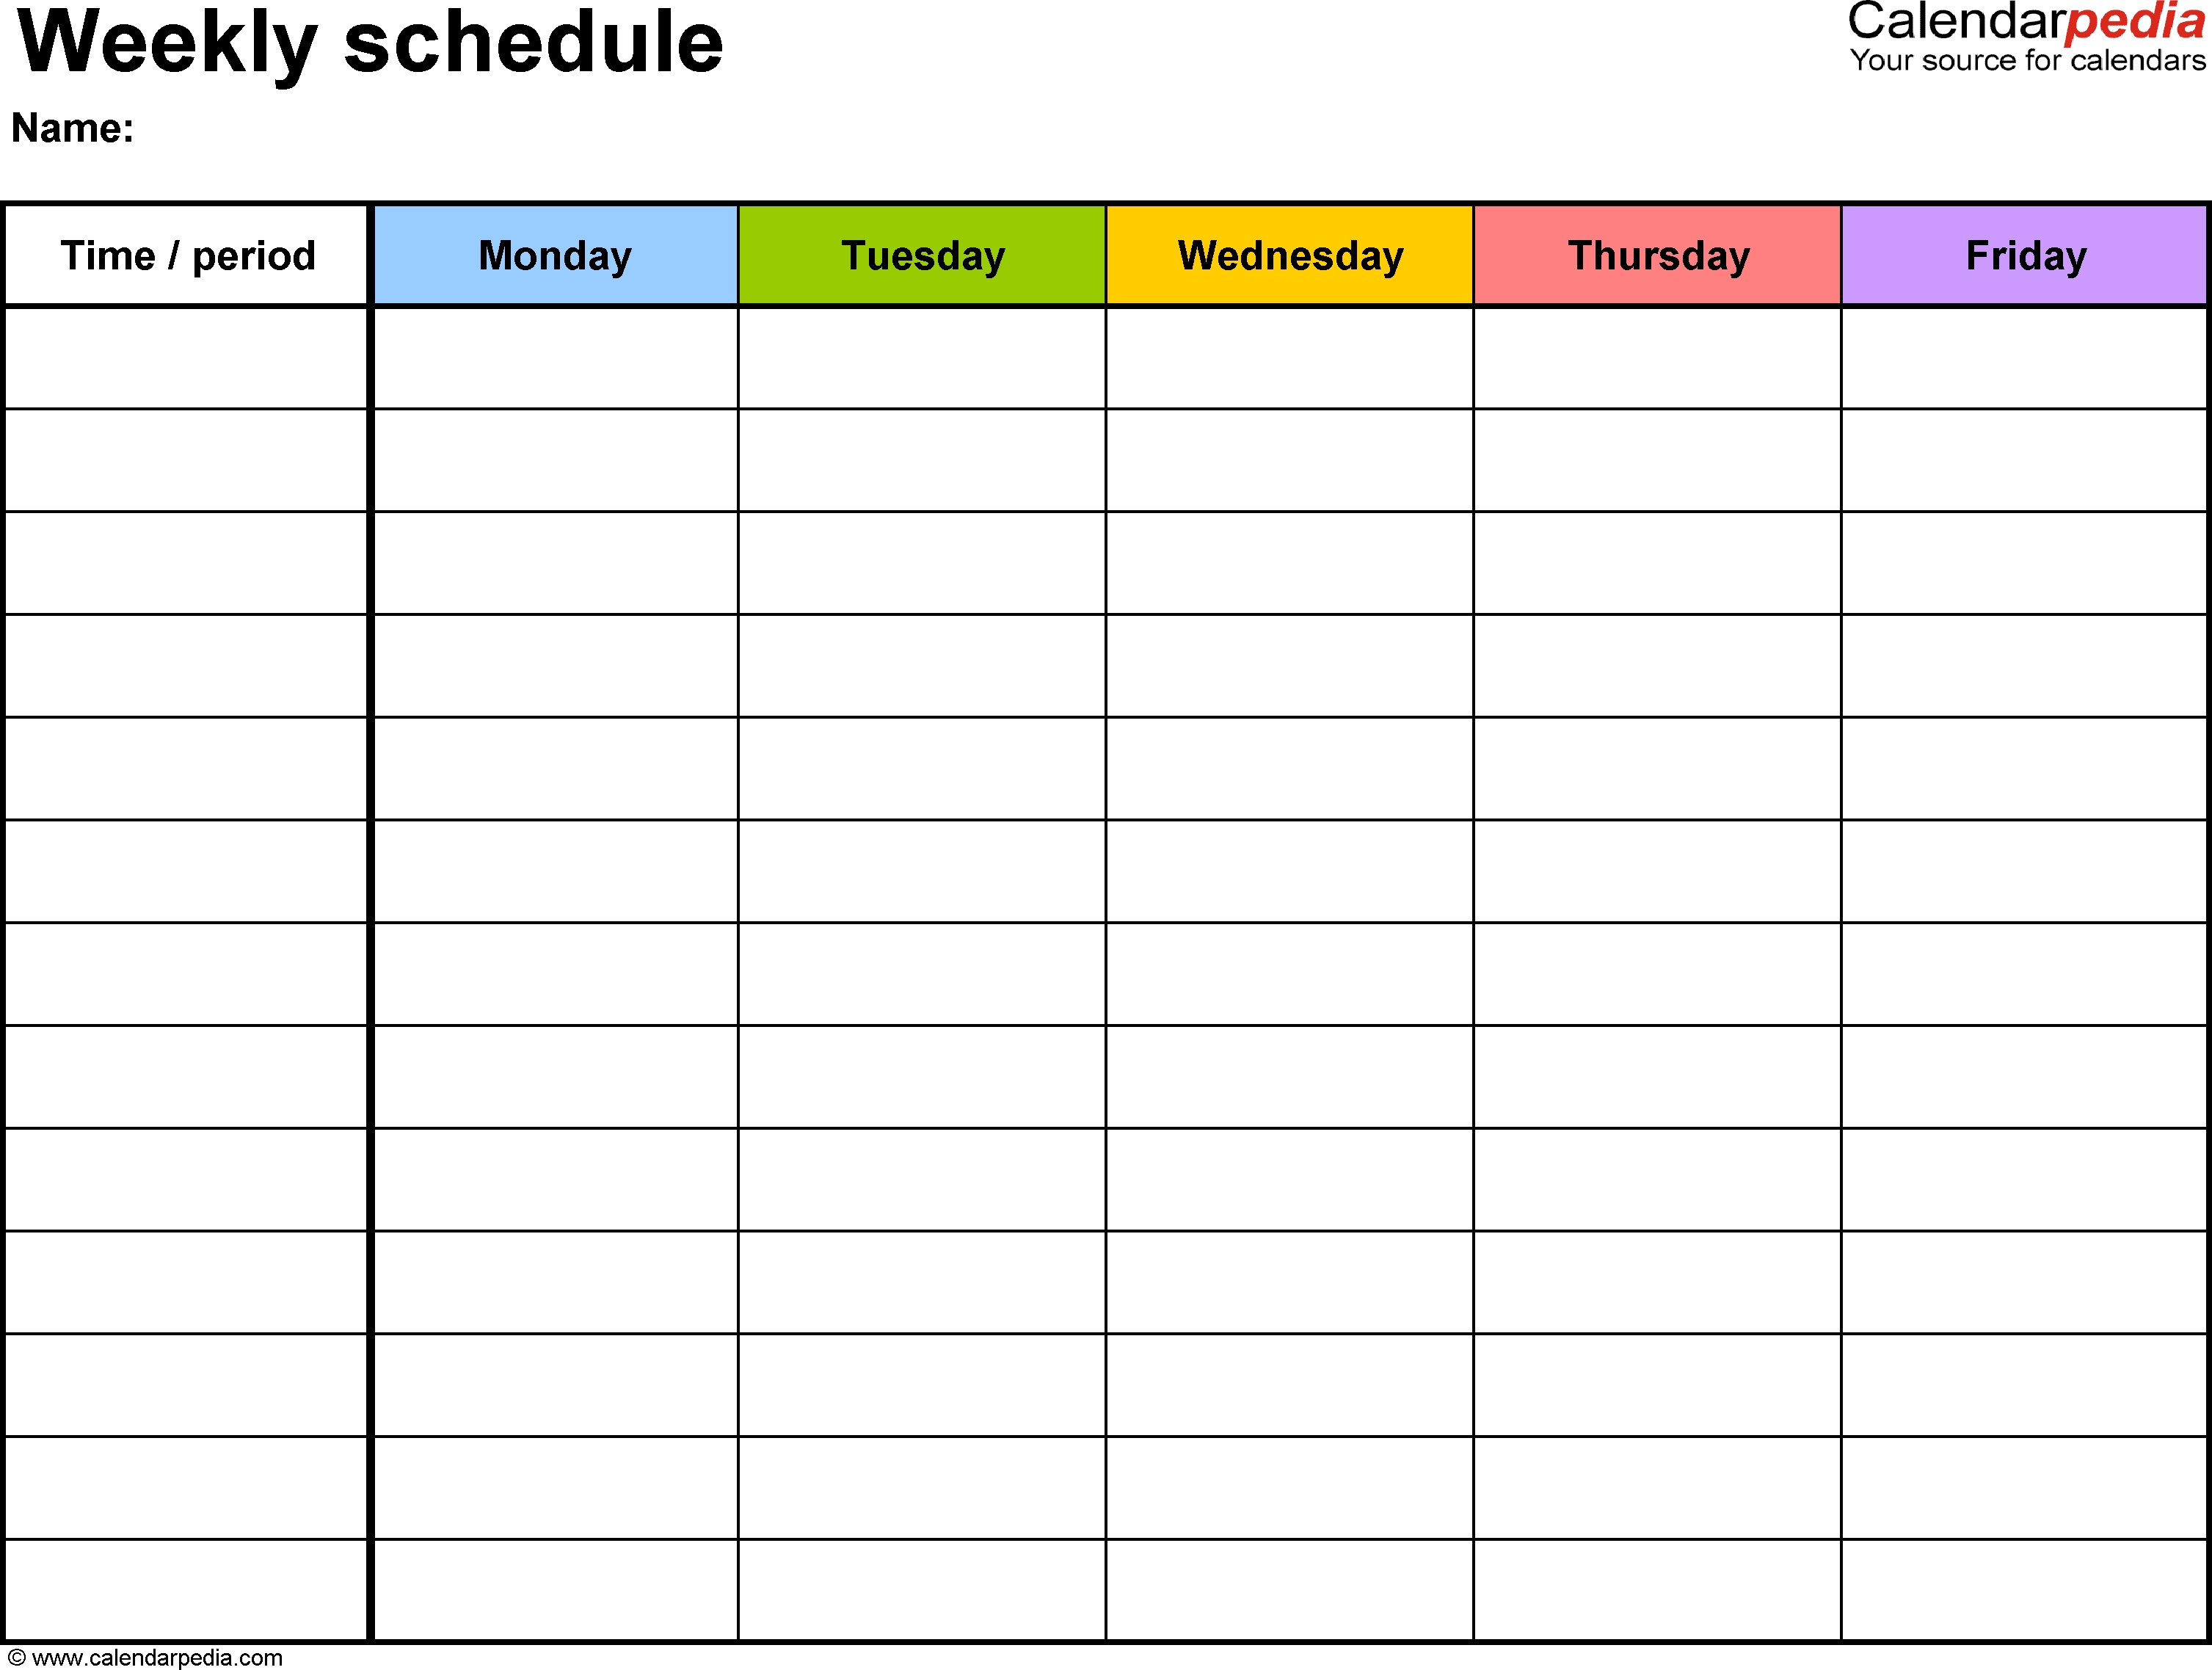 Weekly Schedule Template For Word Version 1: Landscape, 1 throughout Monday To Friday Calendar With Hours